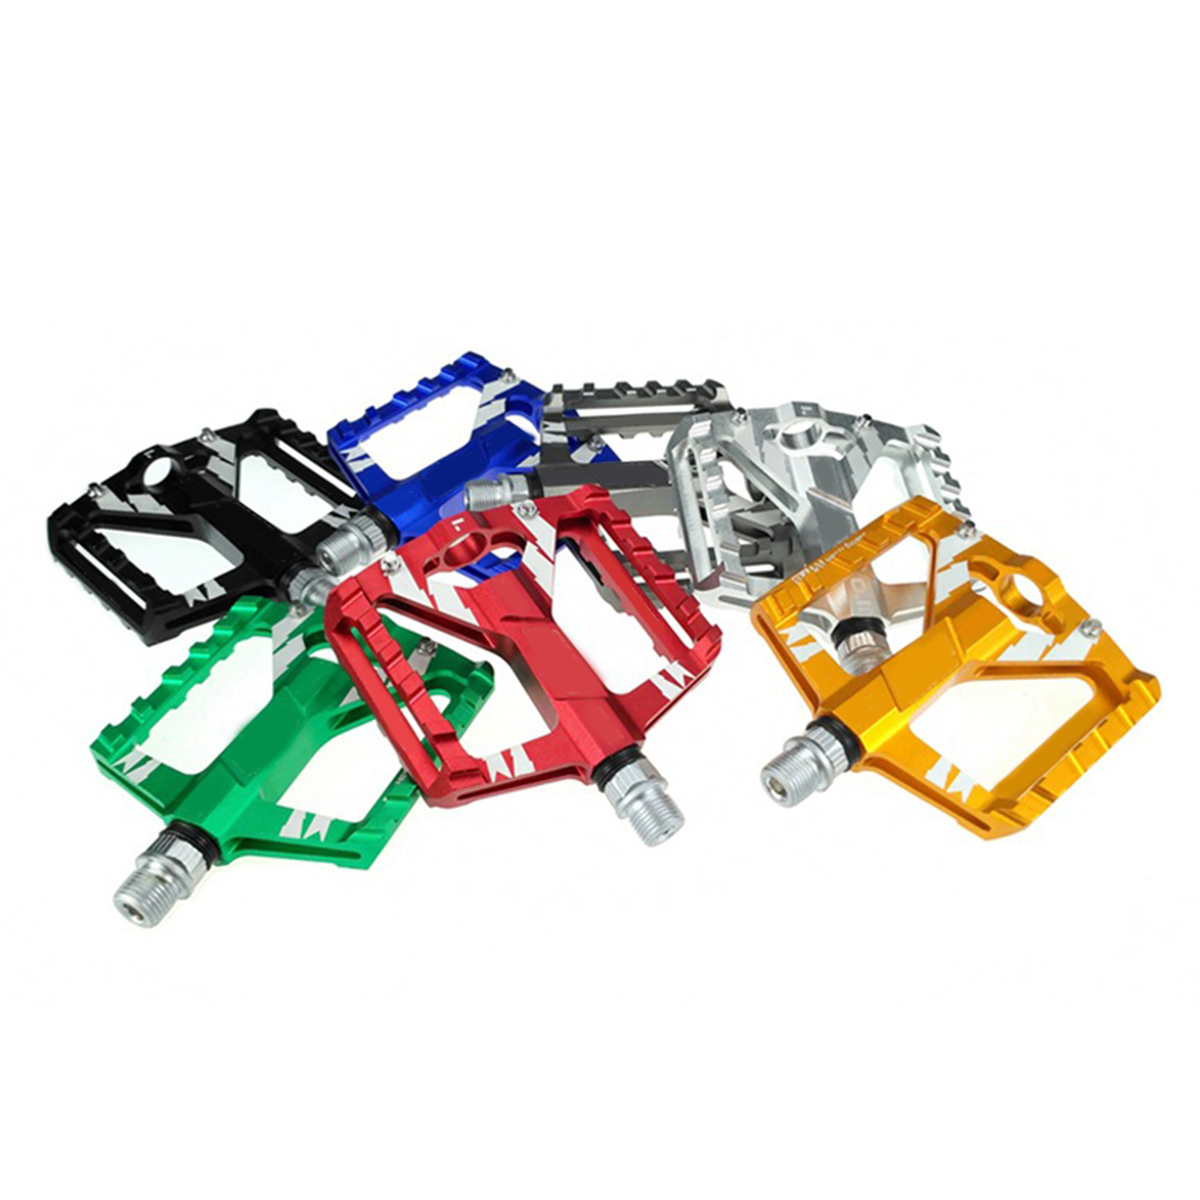 2Pcs Mountain Road Bike Aluminum Alloy MTB Pedals Flat Platform